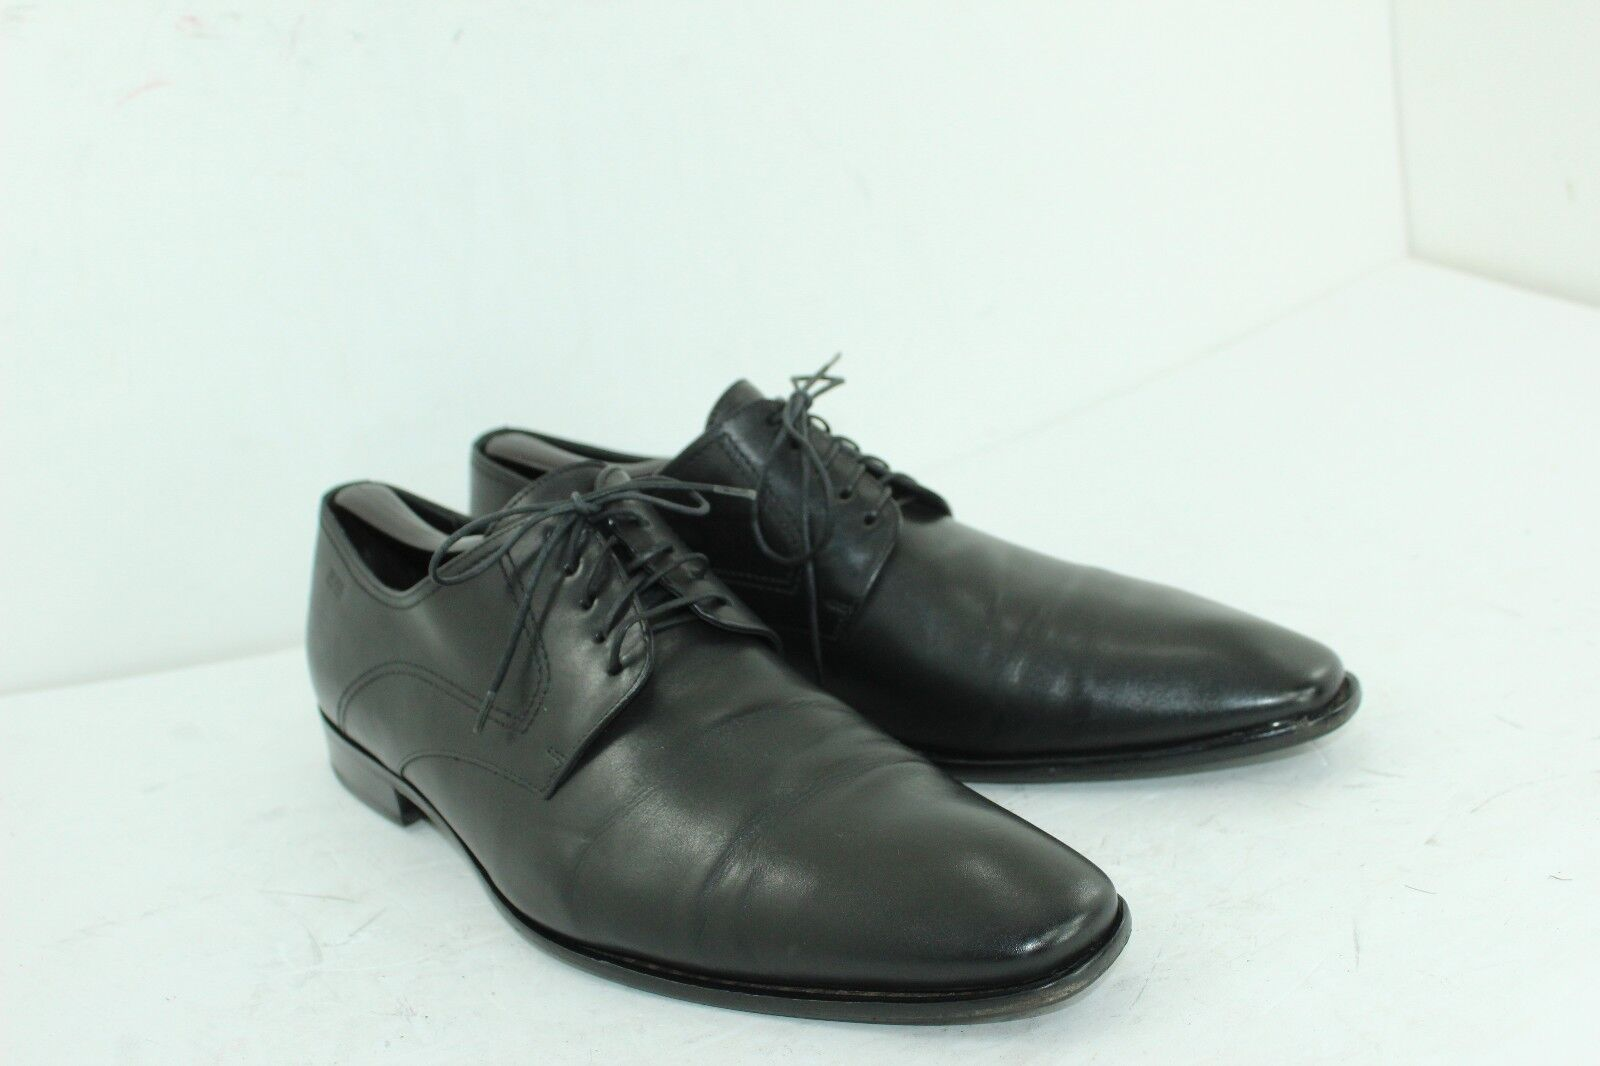 HUGO BOSS chaussures Taille UK 10.5 US Taille 11.5 noir LEATHER IN GOOD CONDITION